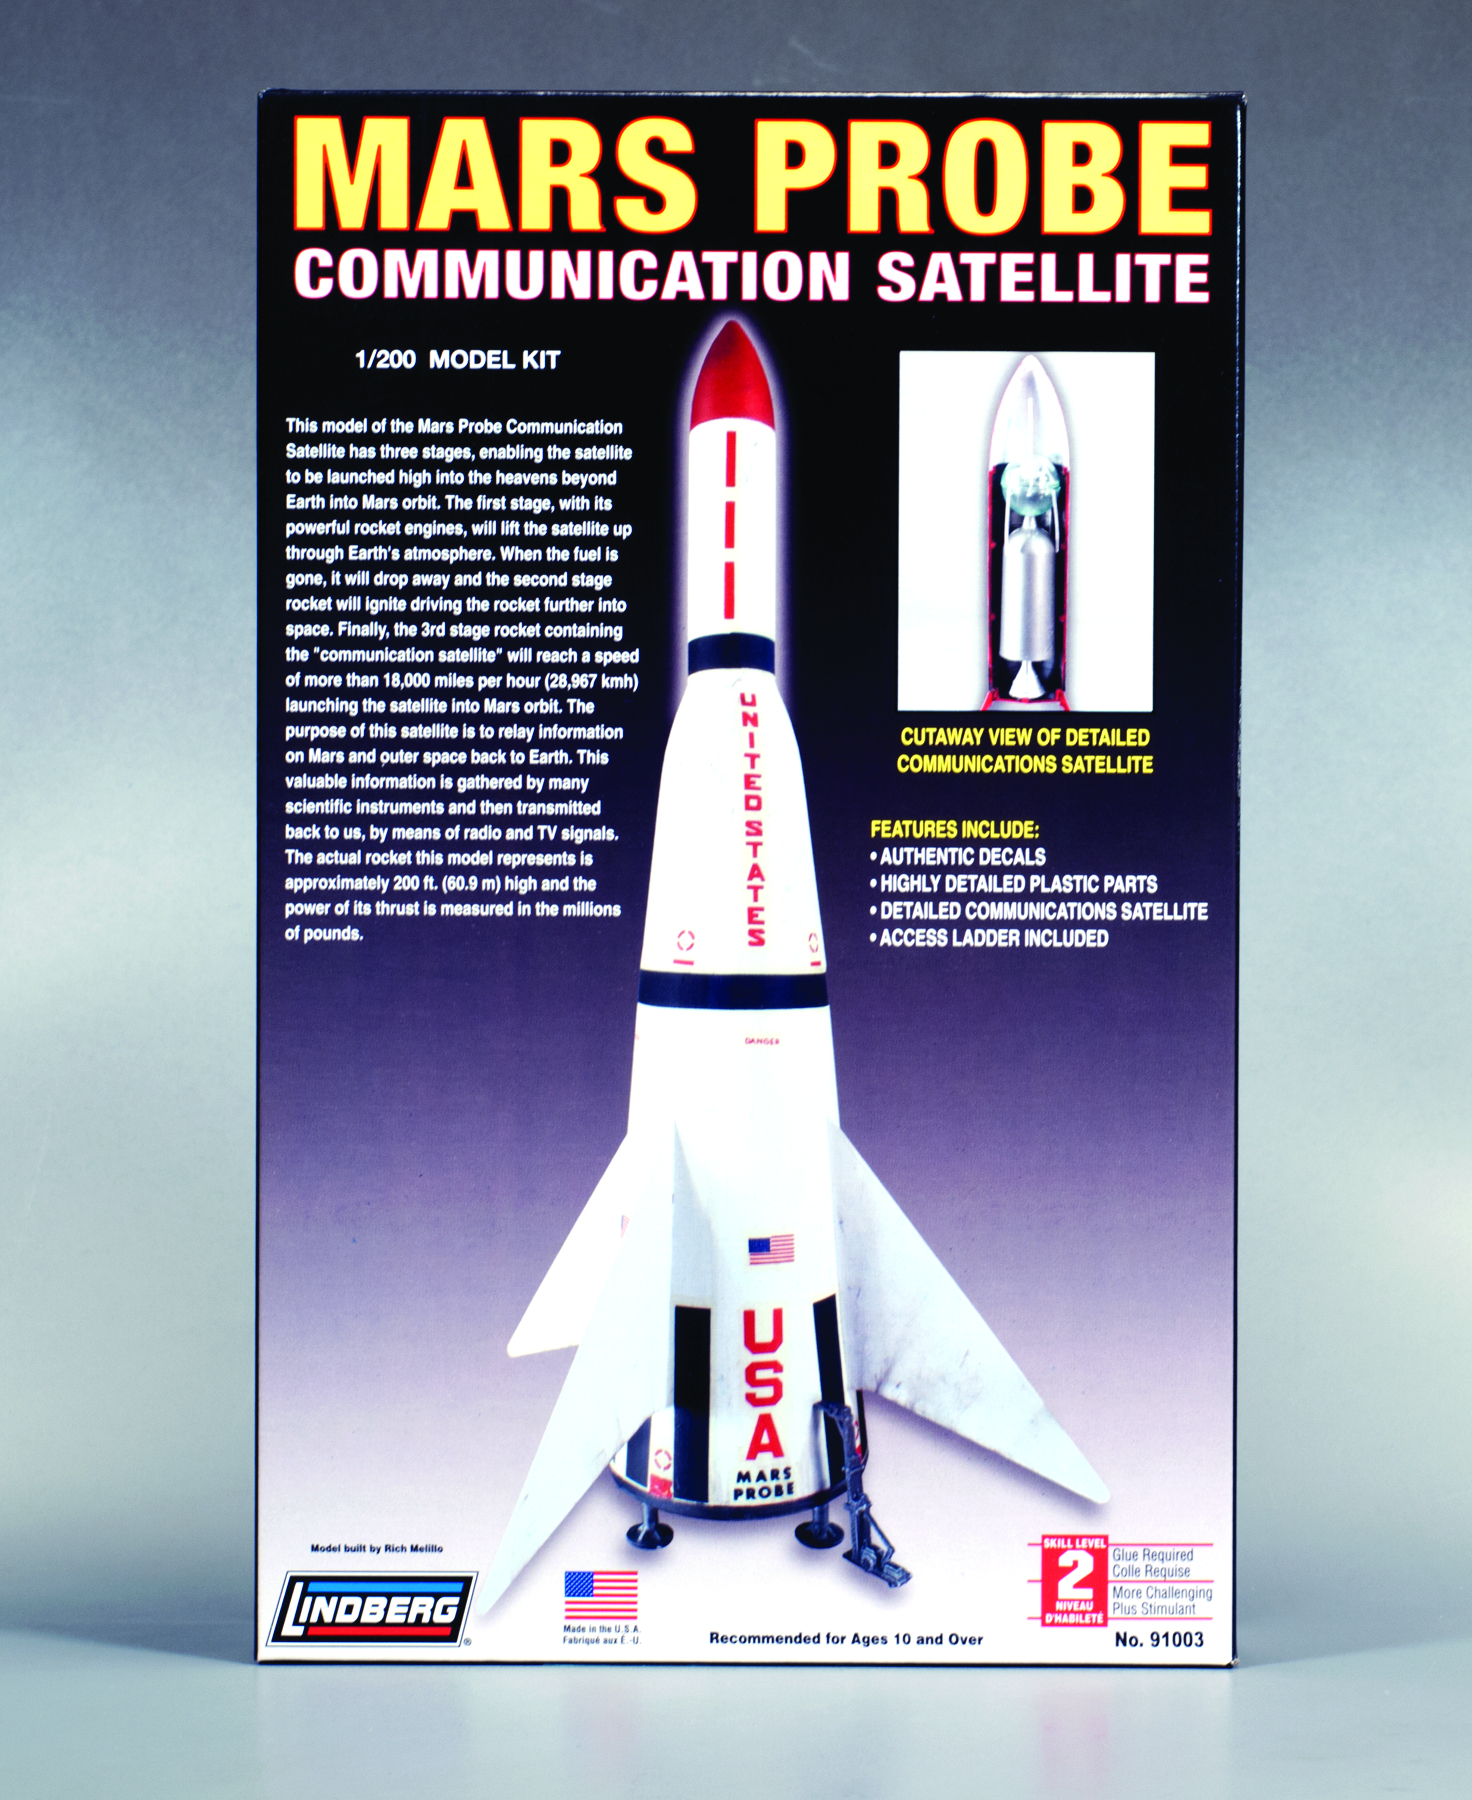 LINDBERG MARS PROBE 1/200 SCALE MODEL KIT